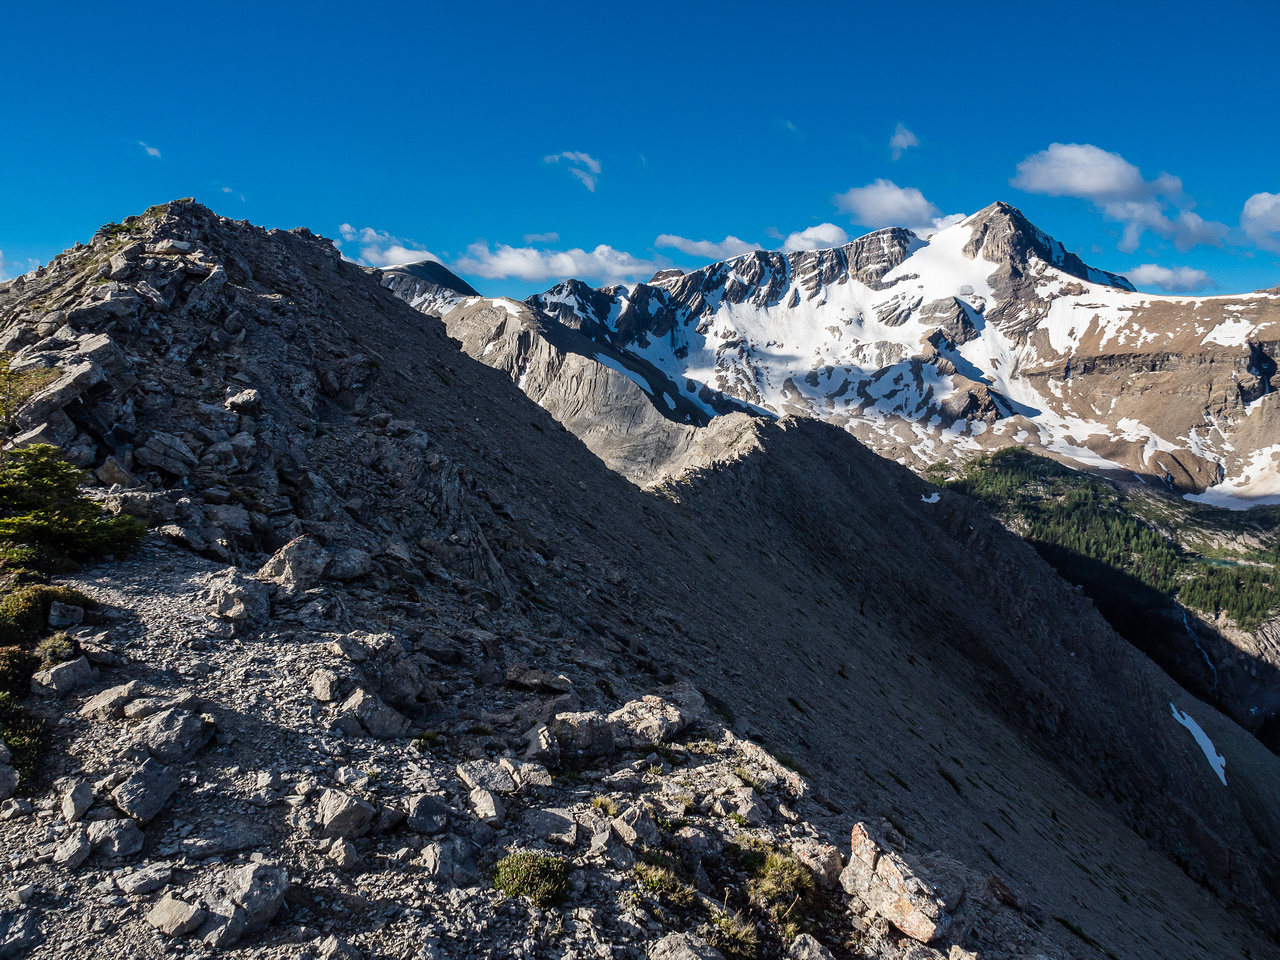 Looking ahead to the rest of the ridge and Nestor Peak with its north pocket glacier.